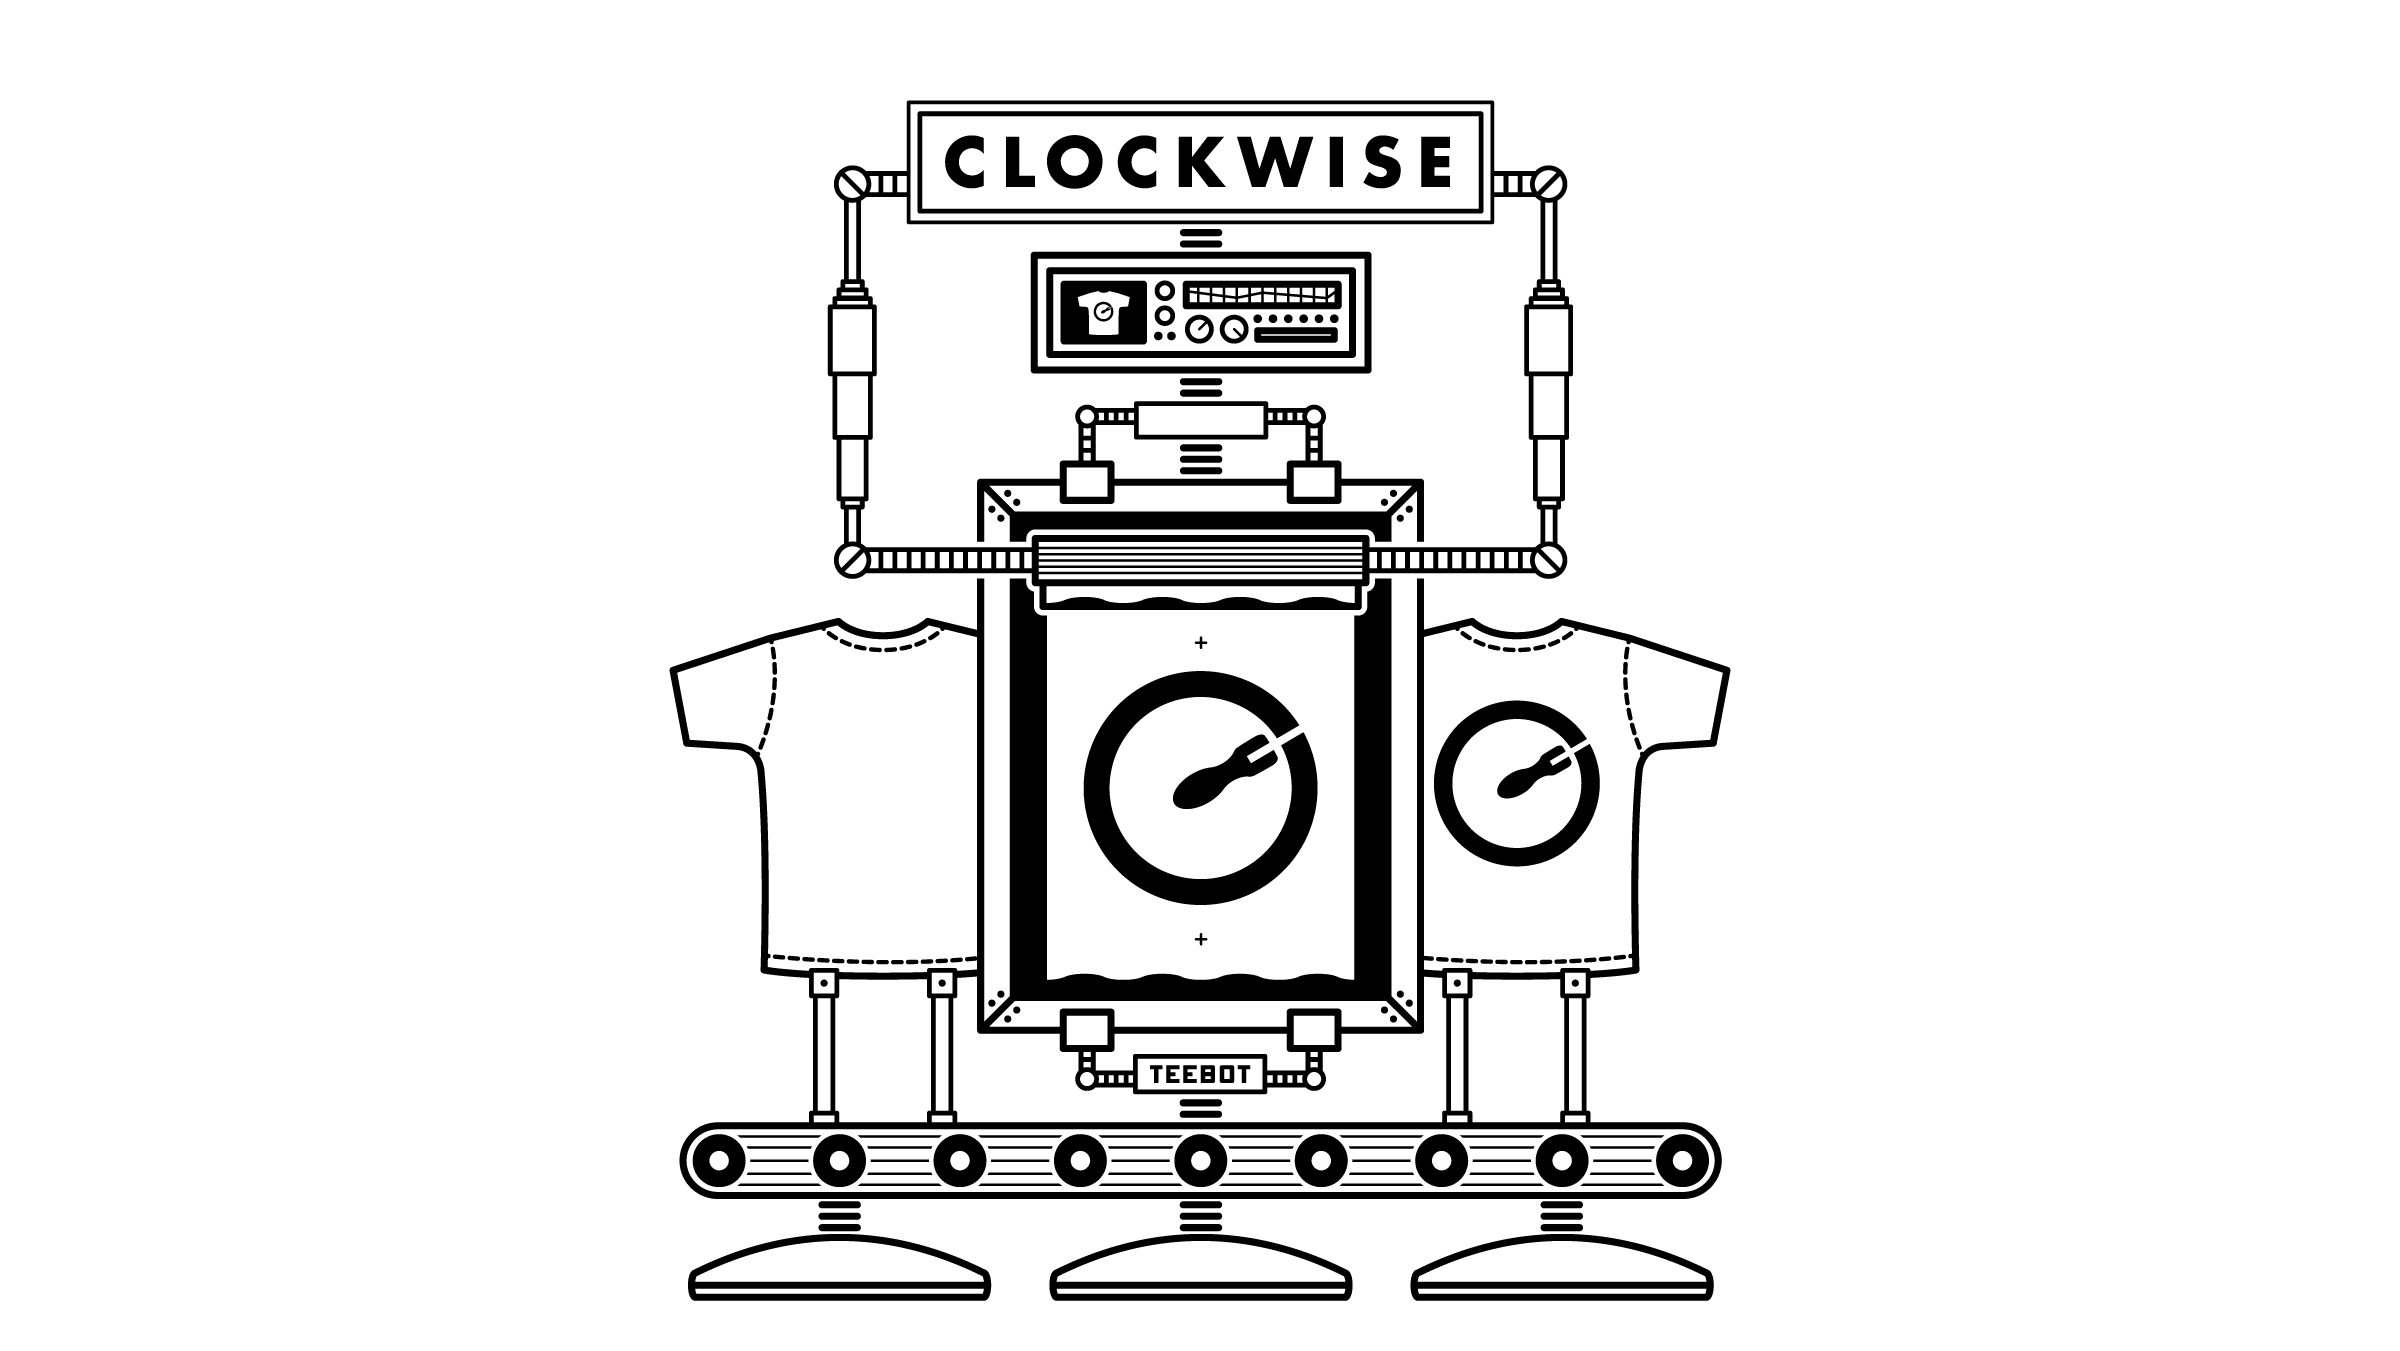 clockwise_artwork-07.png